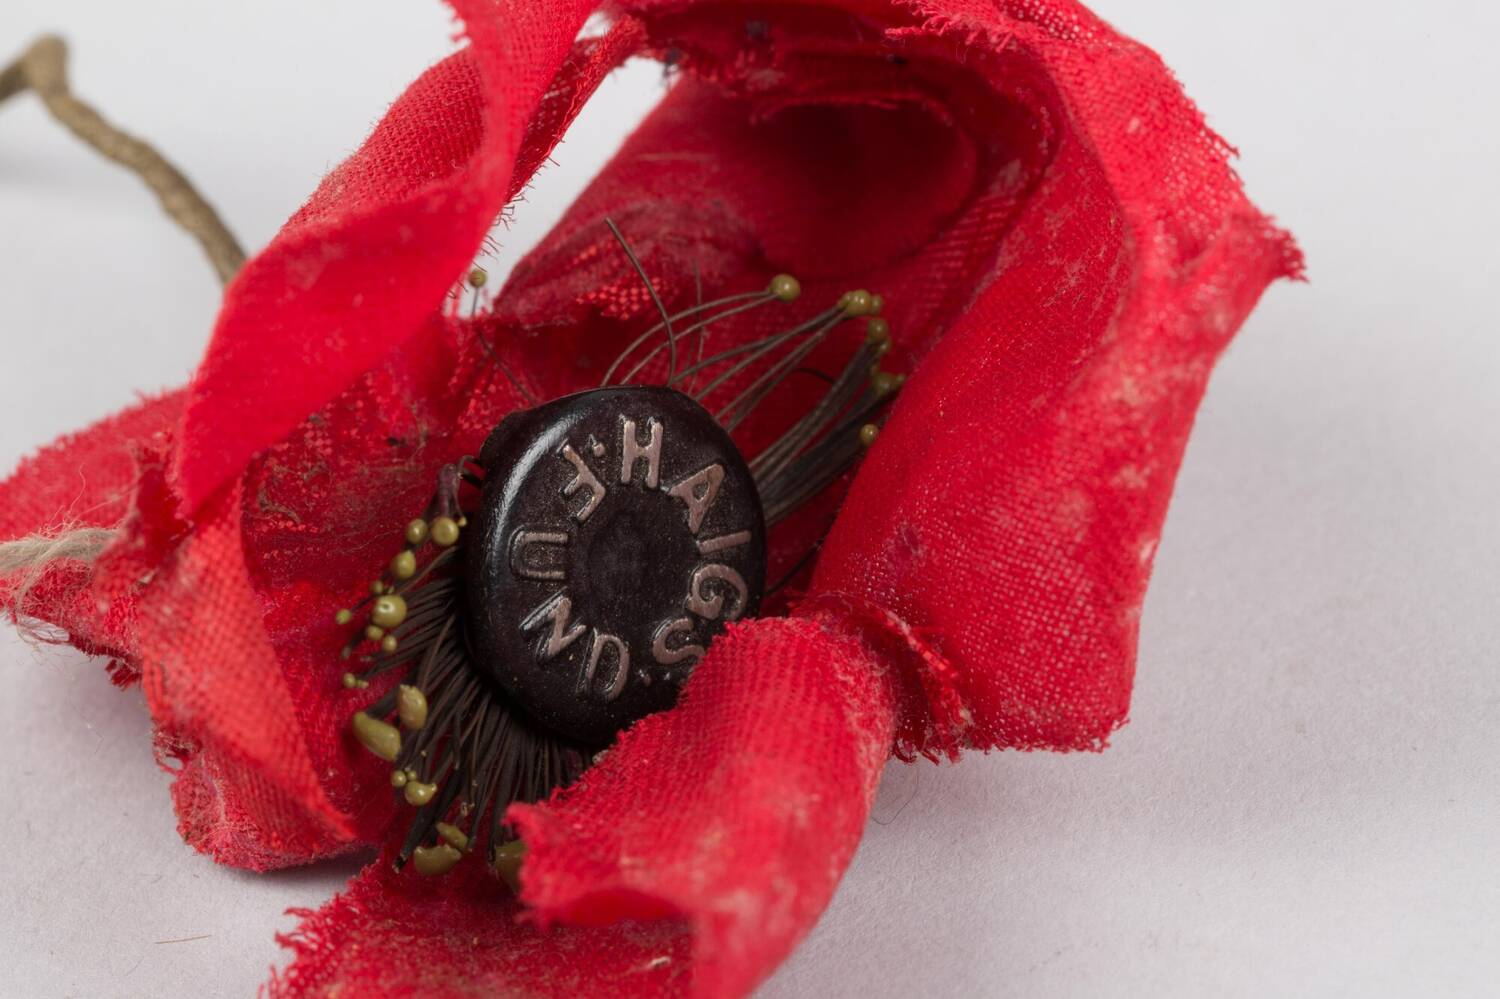 A crumpled red poppy, made from material, with HAIGS FUND on the central button.